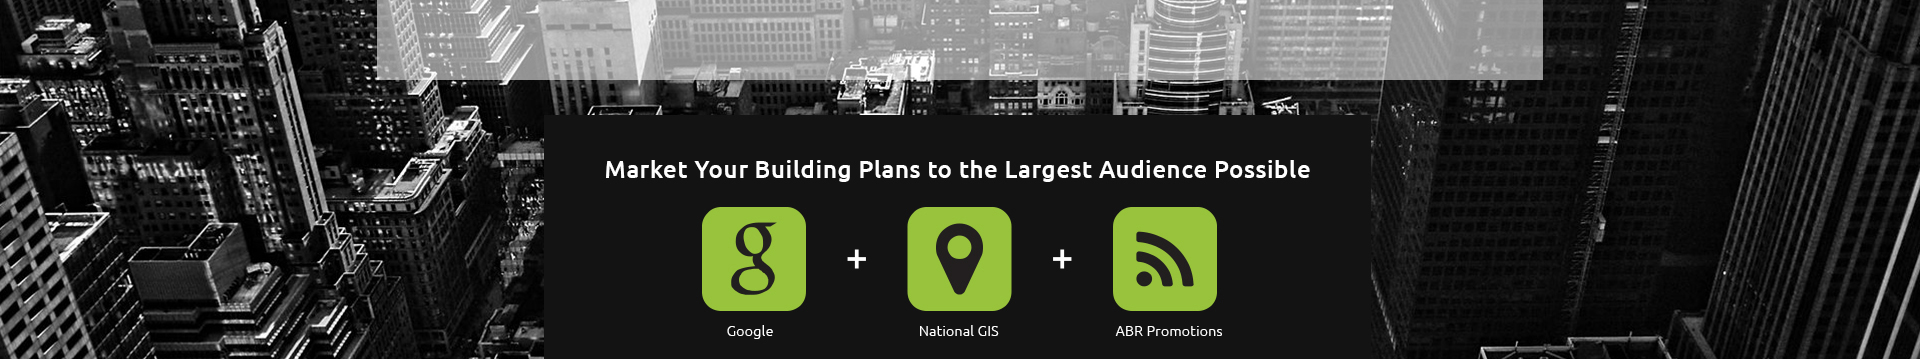 Market your building plans on Google and the national GIS for construction